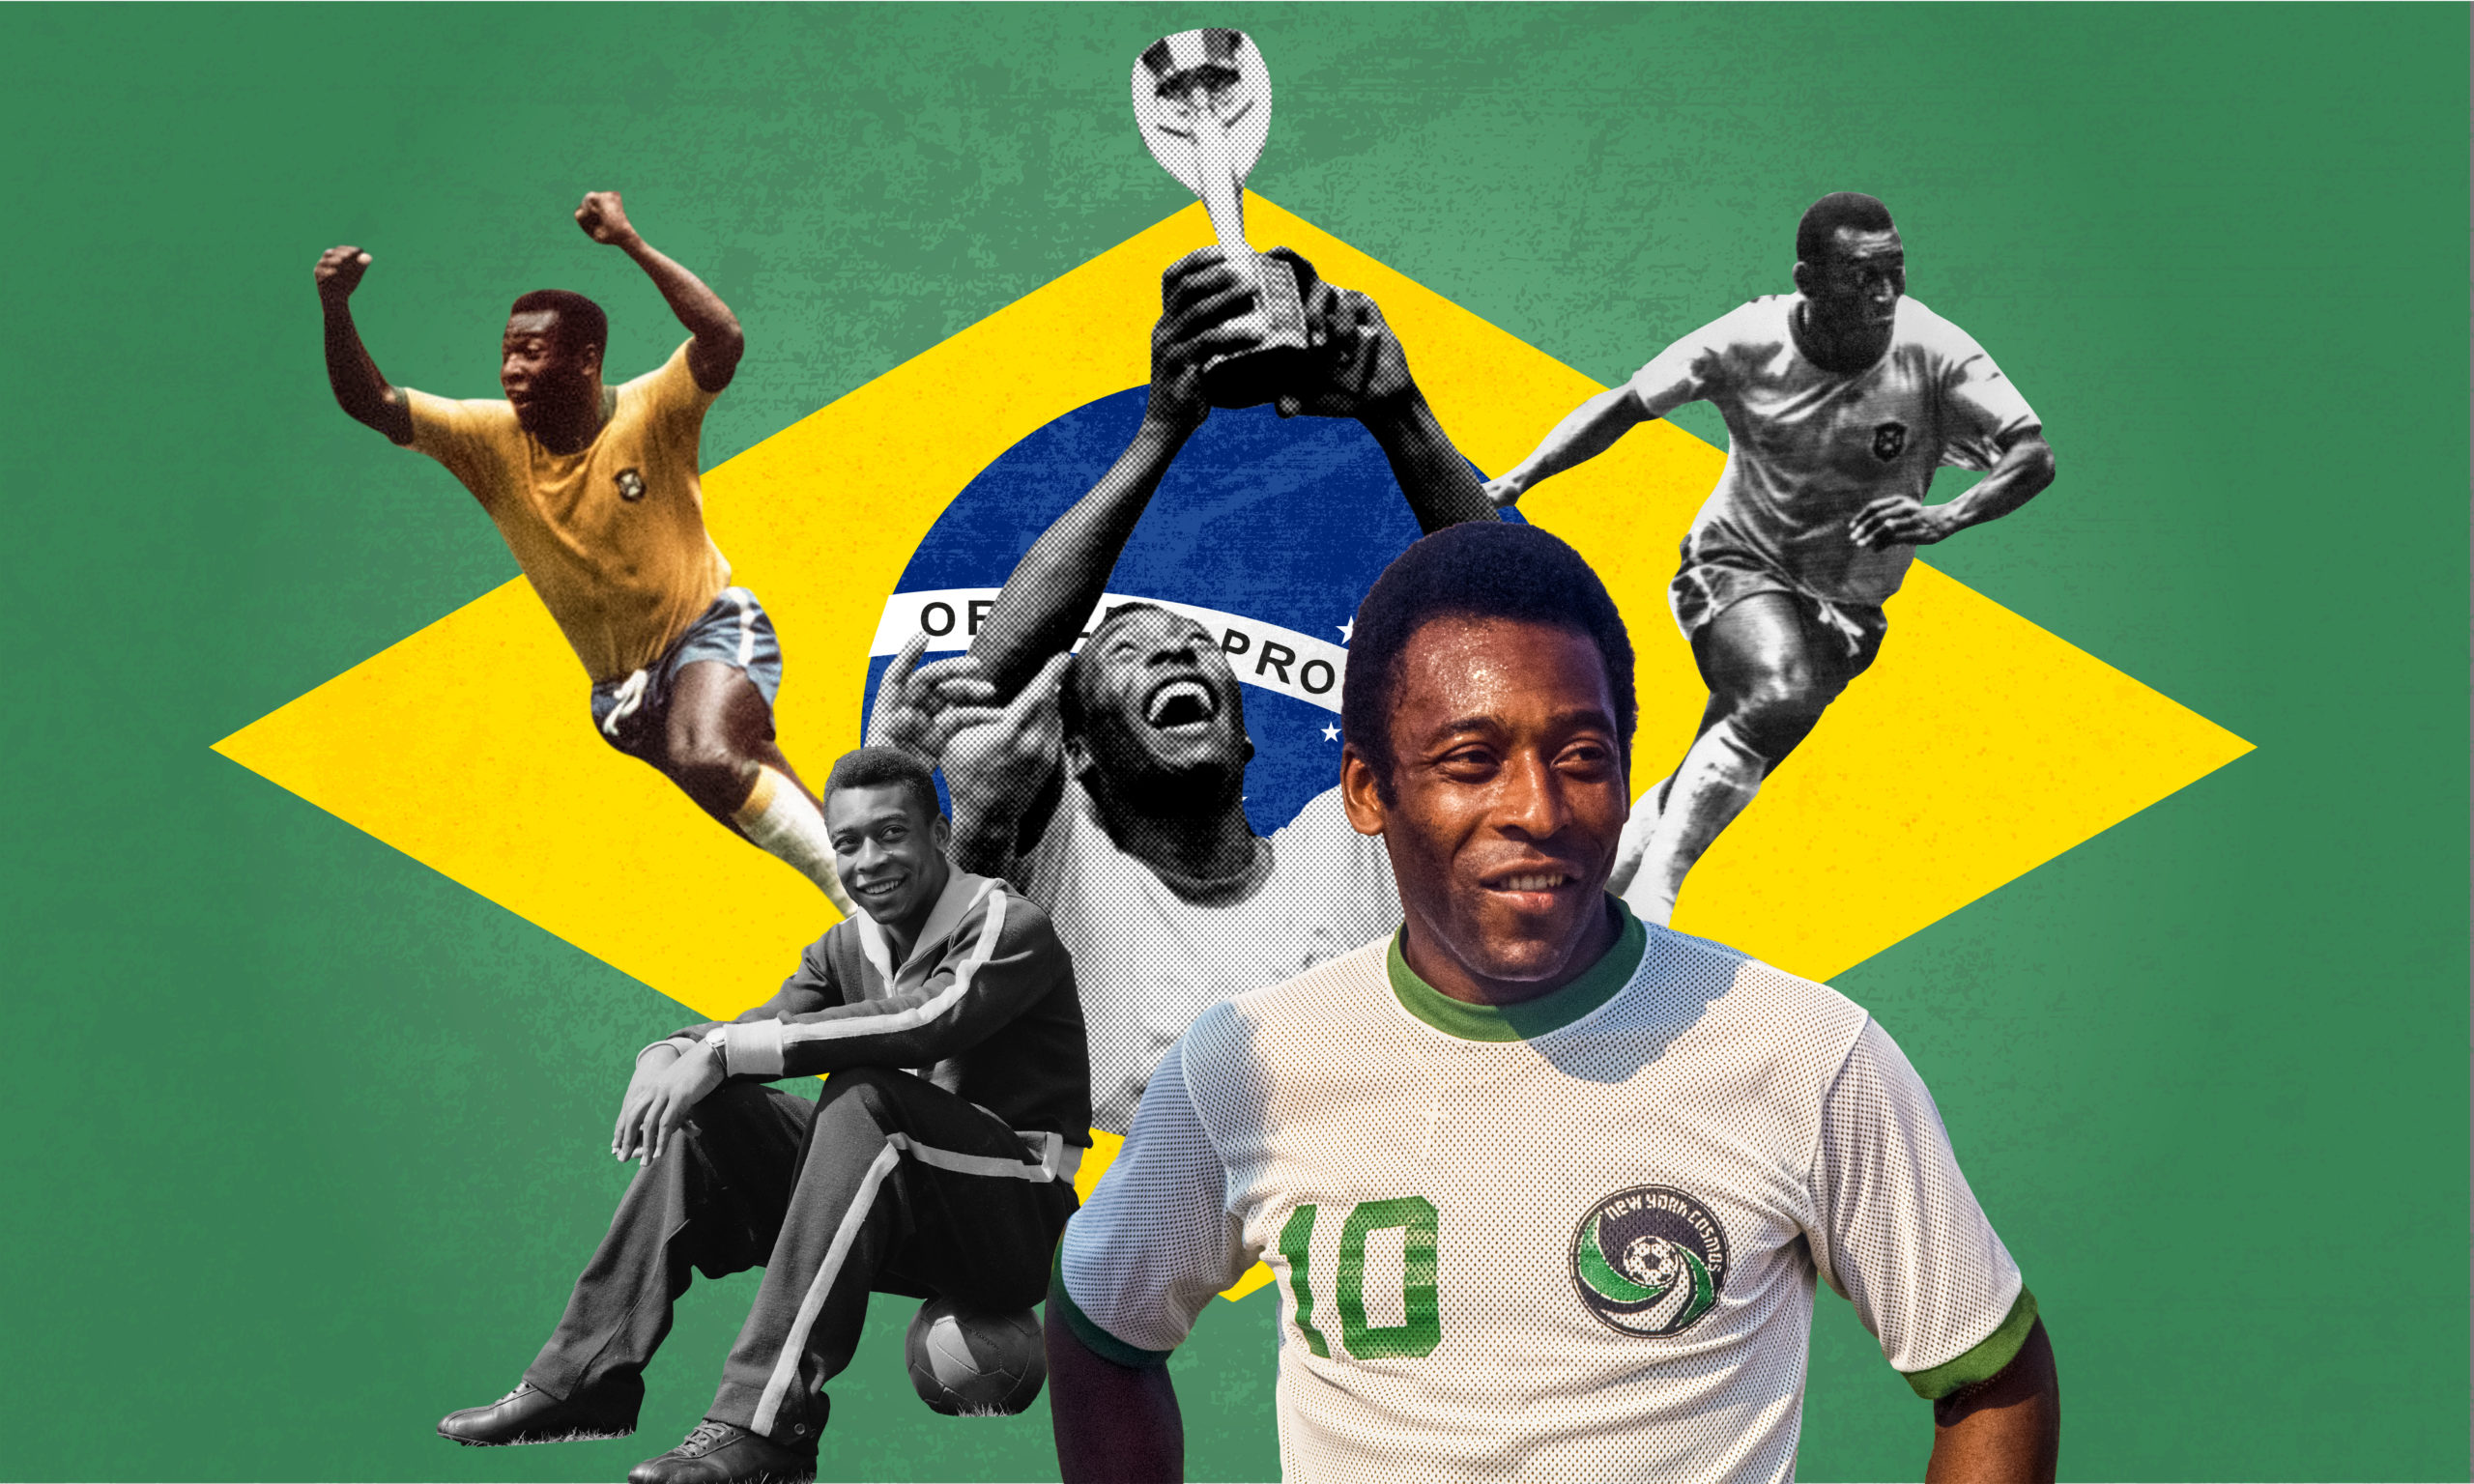 Pele composite image for The Guardian